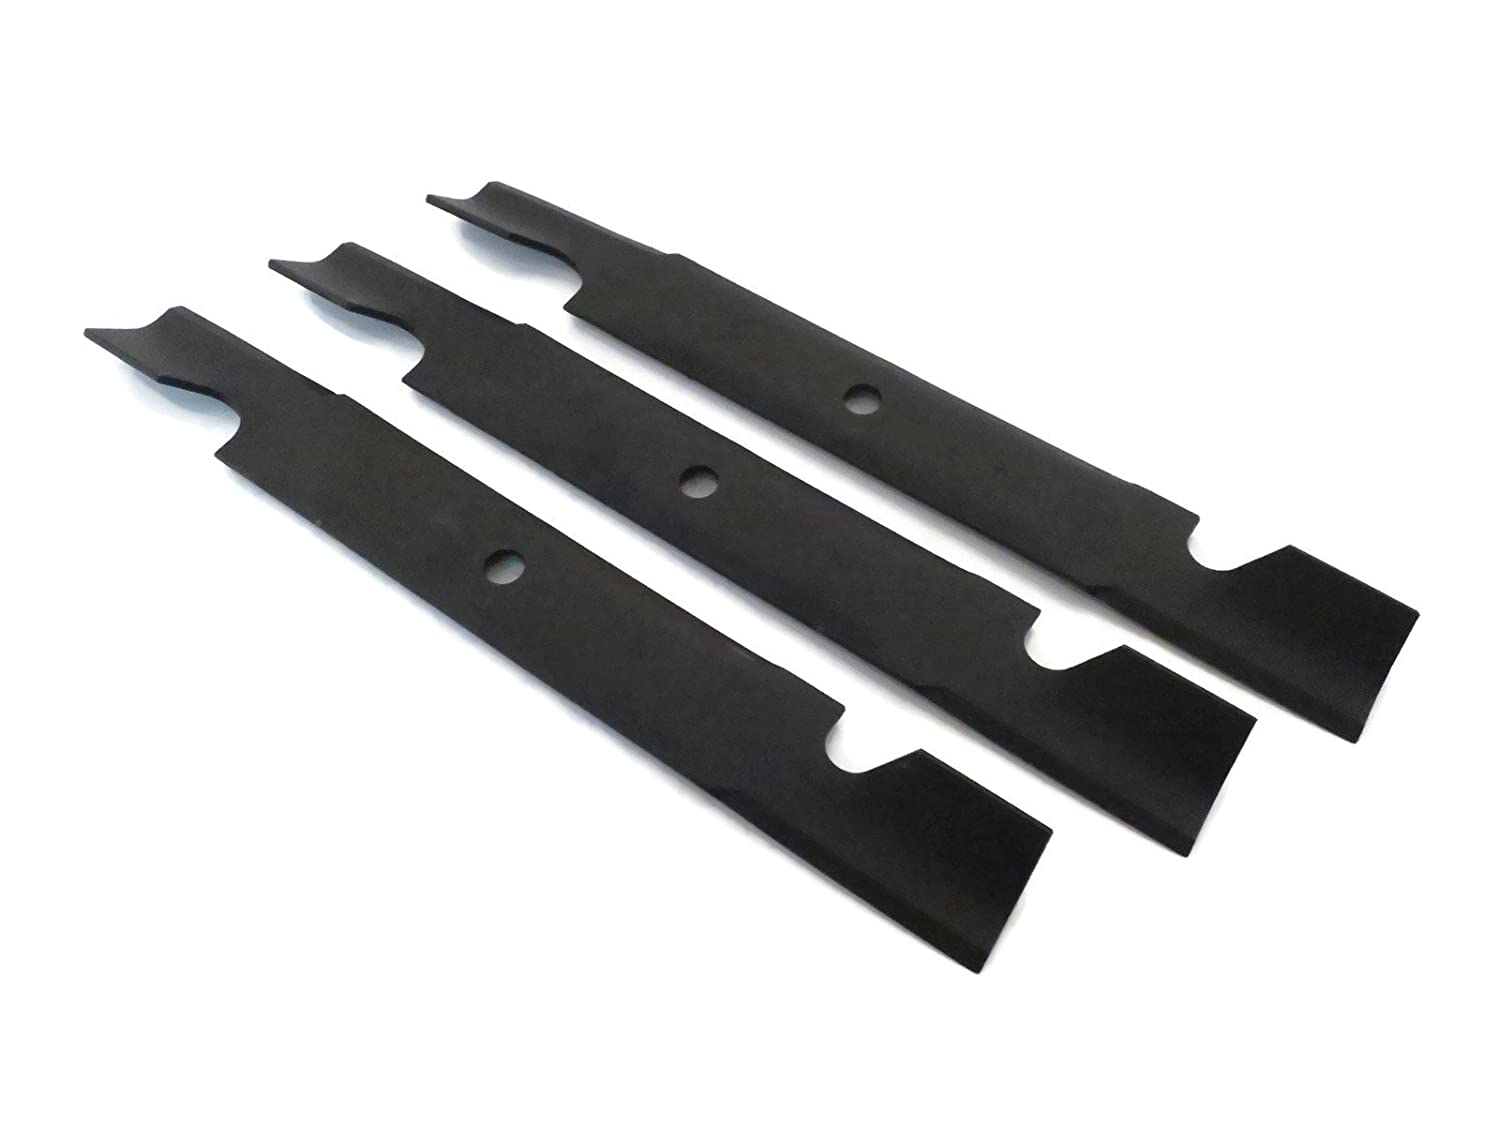 Toro 115-9650-03 Hi Flo Blade Kit (Set of 3)